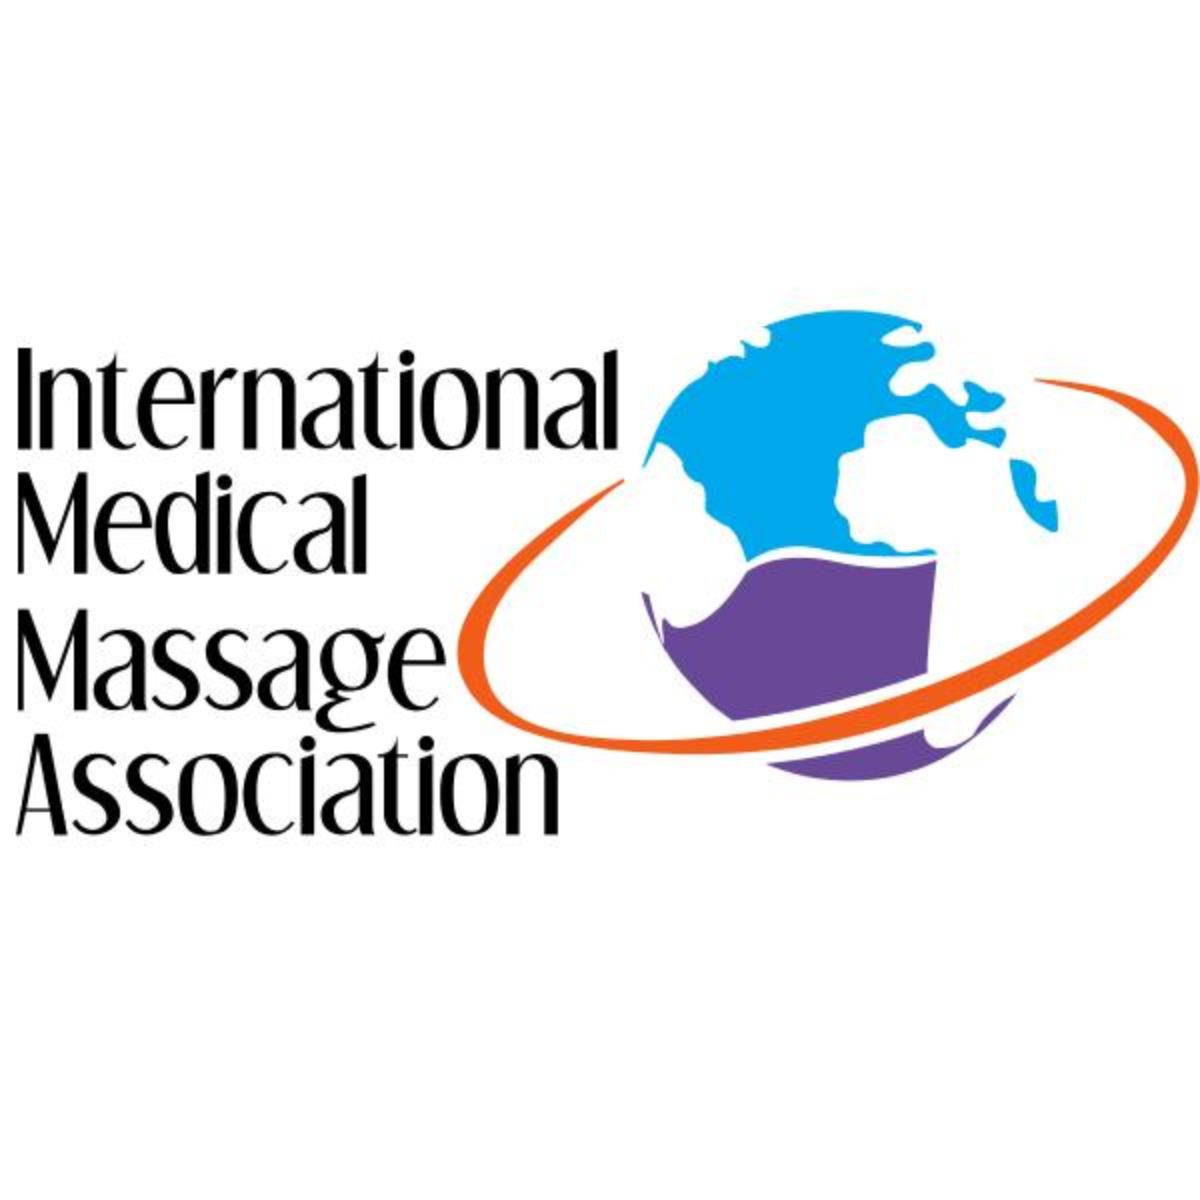 International Medical Massage Association